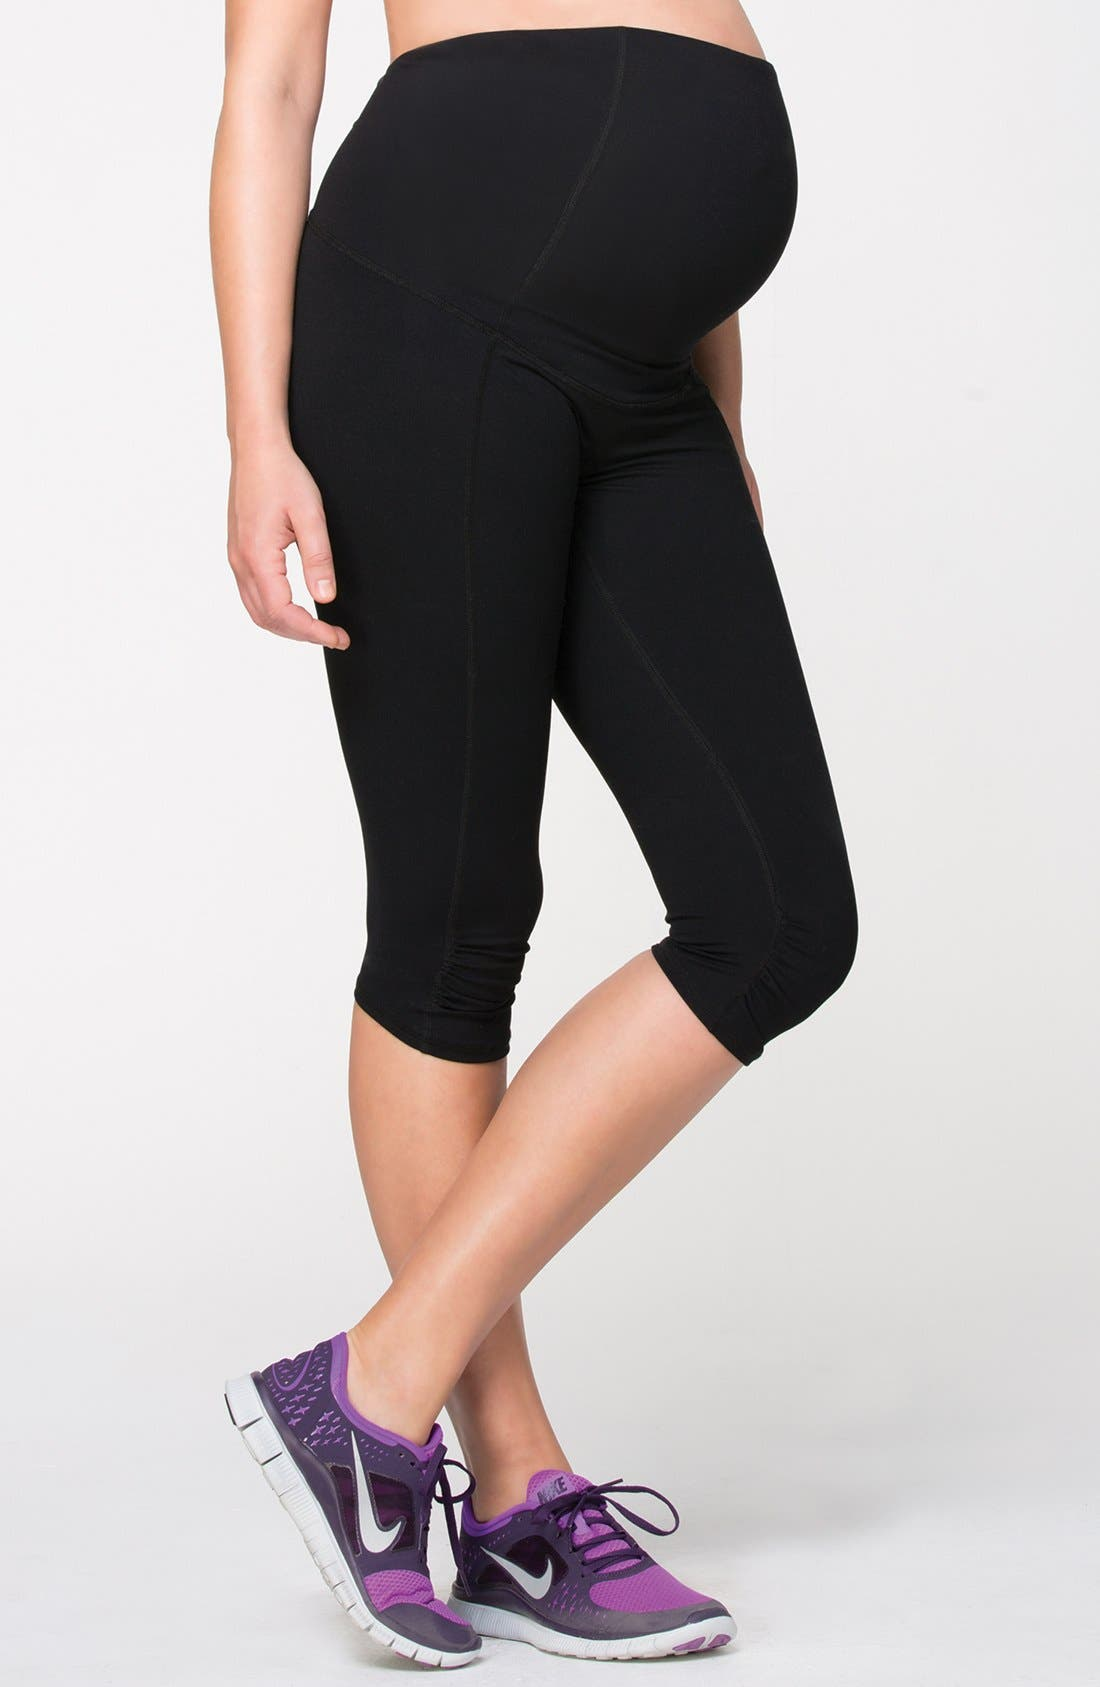 Main Image - Ingrid & Isabel® Knee Length Active Maternity Pants with Crossover Panel